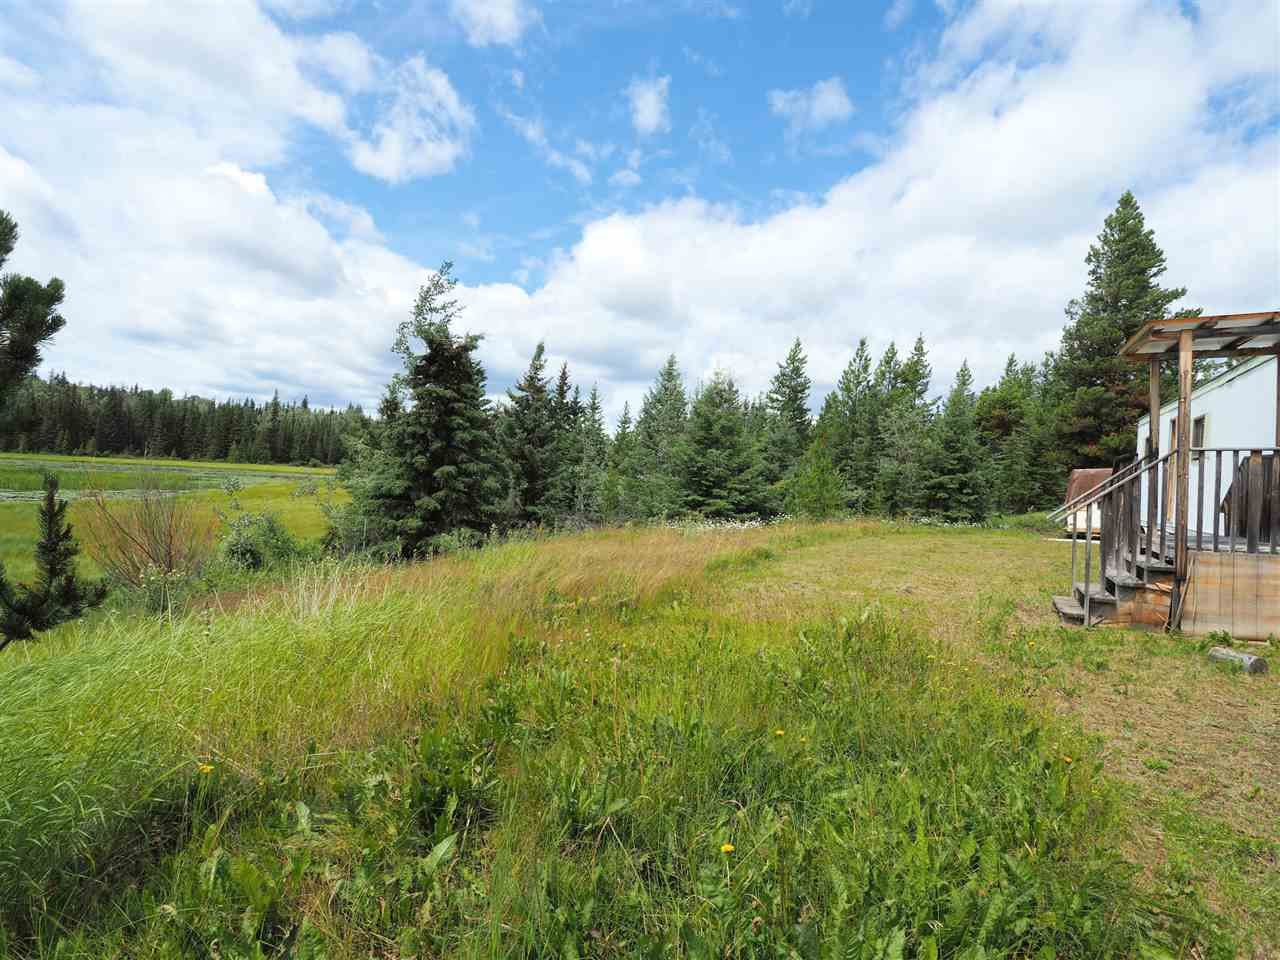 Photo 1: Photos: 5532 LITTLE FORT 24 Highway in Lone Butte: Lone Butte/Green Lk/Watch Lk Land for sale (100 Mile House (Zone 10))  : MLS®# R2419528